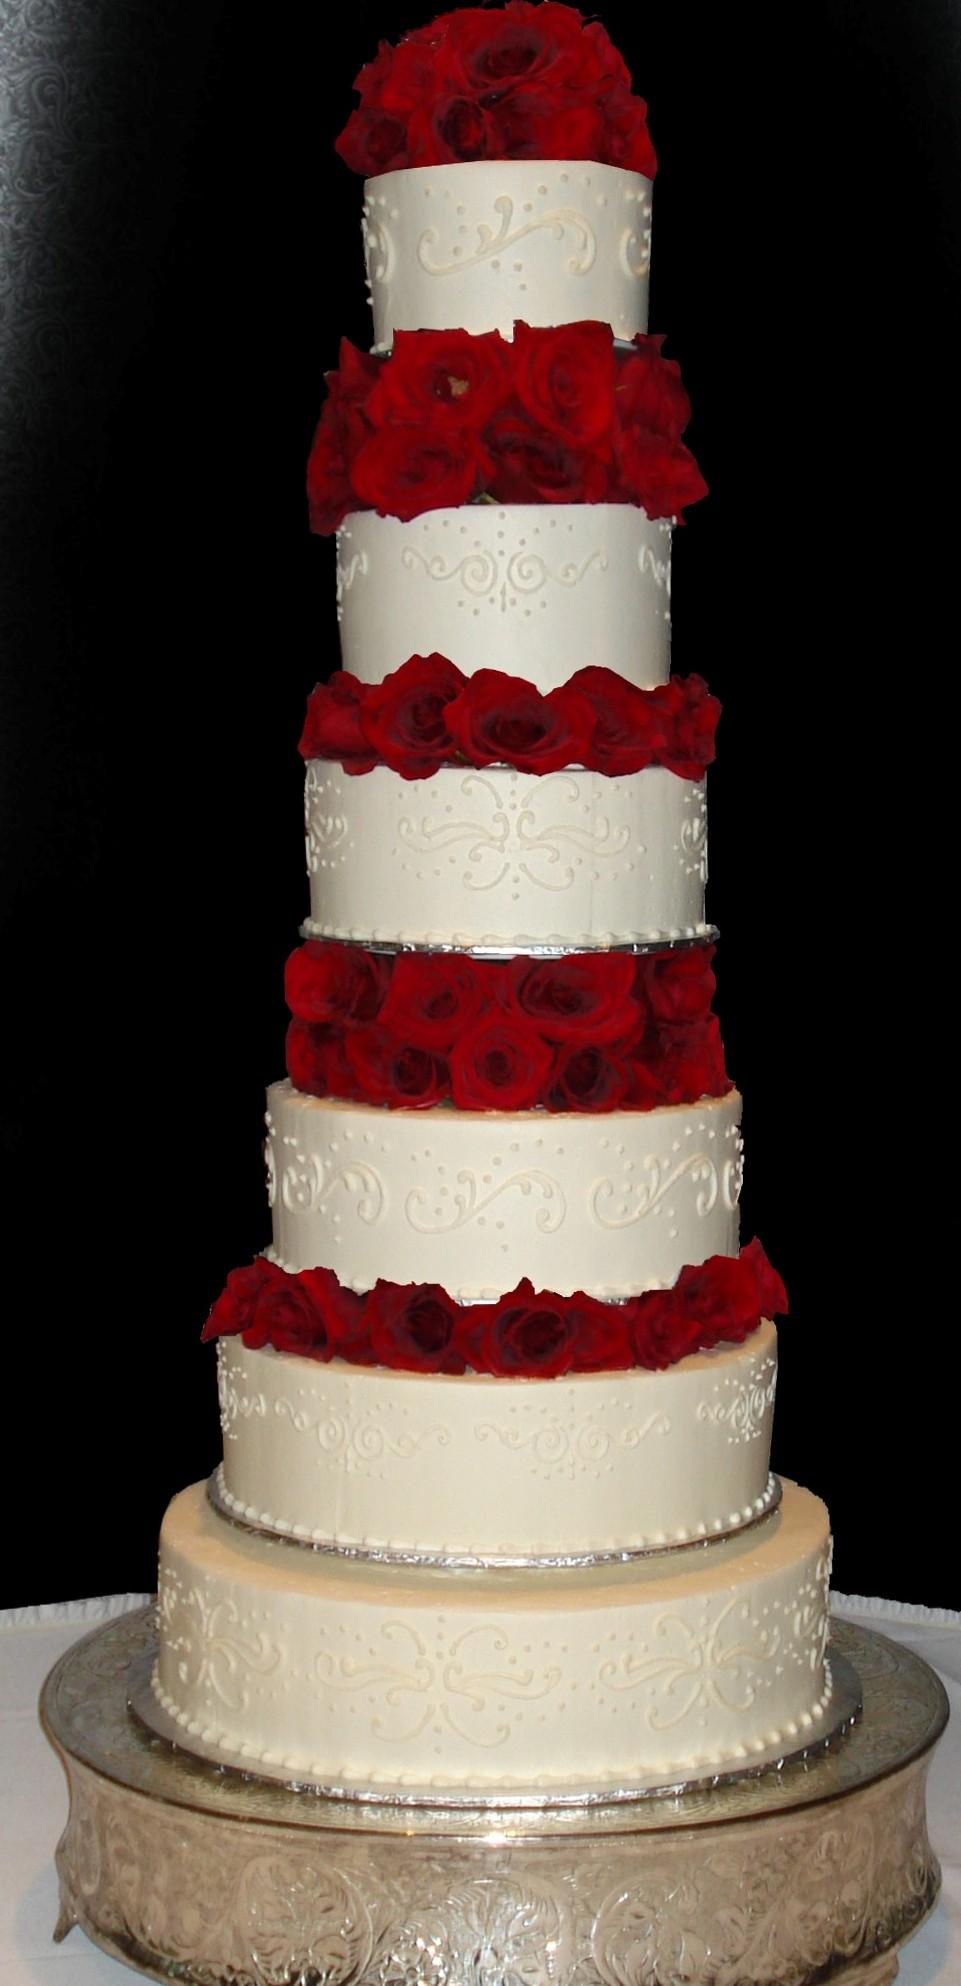 Candlelight Buttercream Iced 6 Tier Round Wedding Cake Decorated With White Variegated Patterned Scrolls